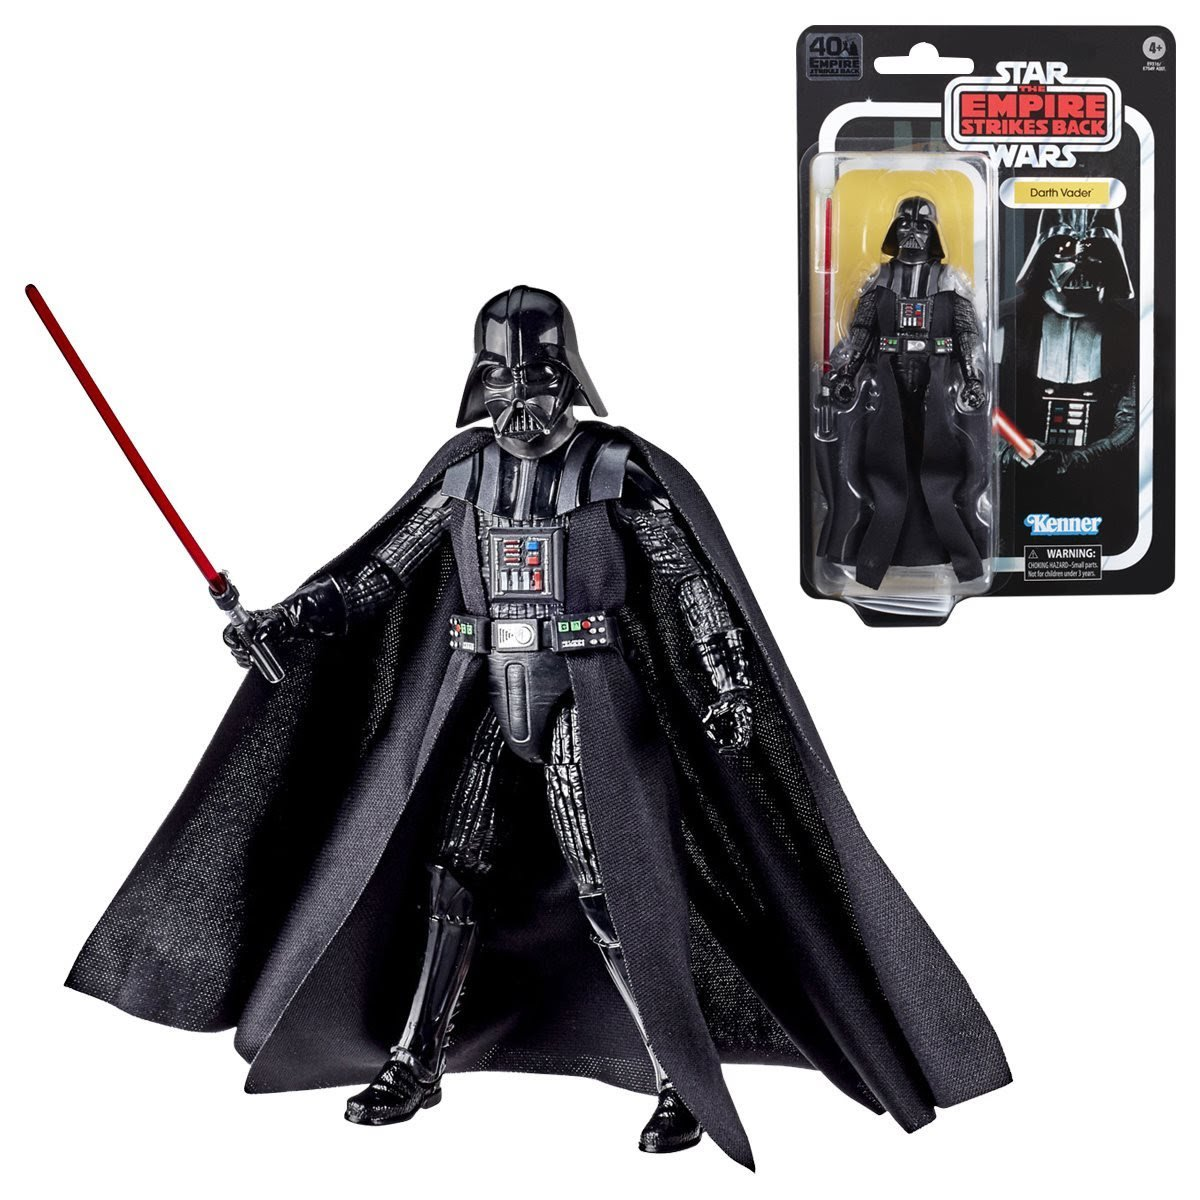 Darth Vader - The Black Series 40th Anniversary Action Figure